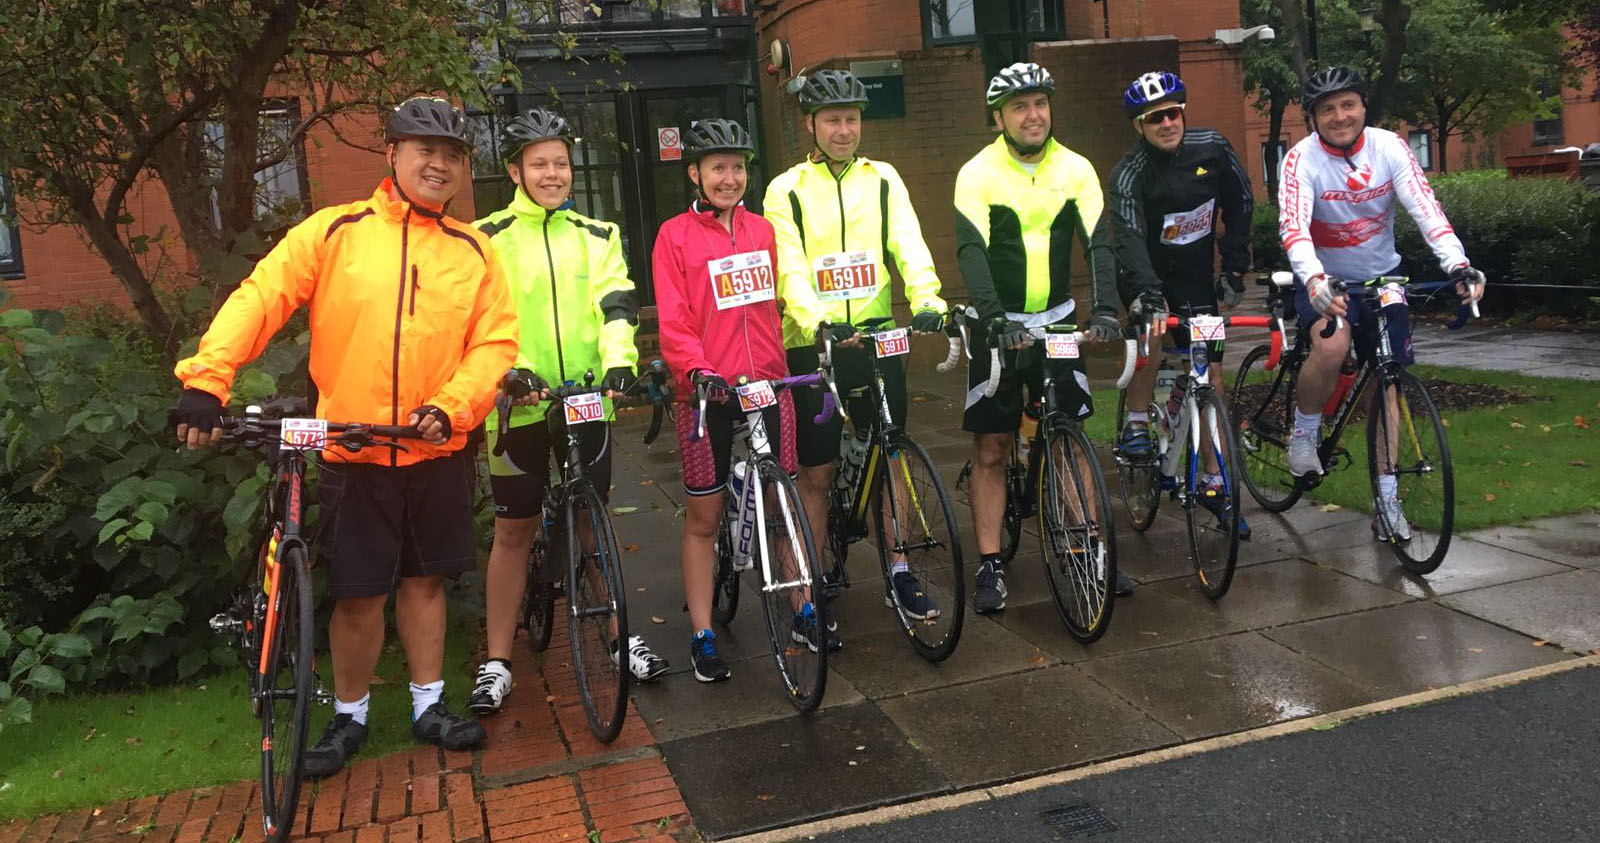 Edward Chan training for Pedal for Scotland with his friends.